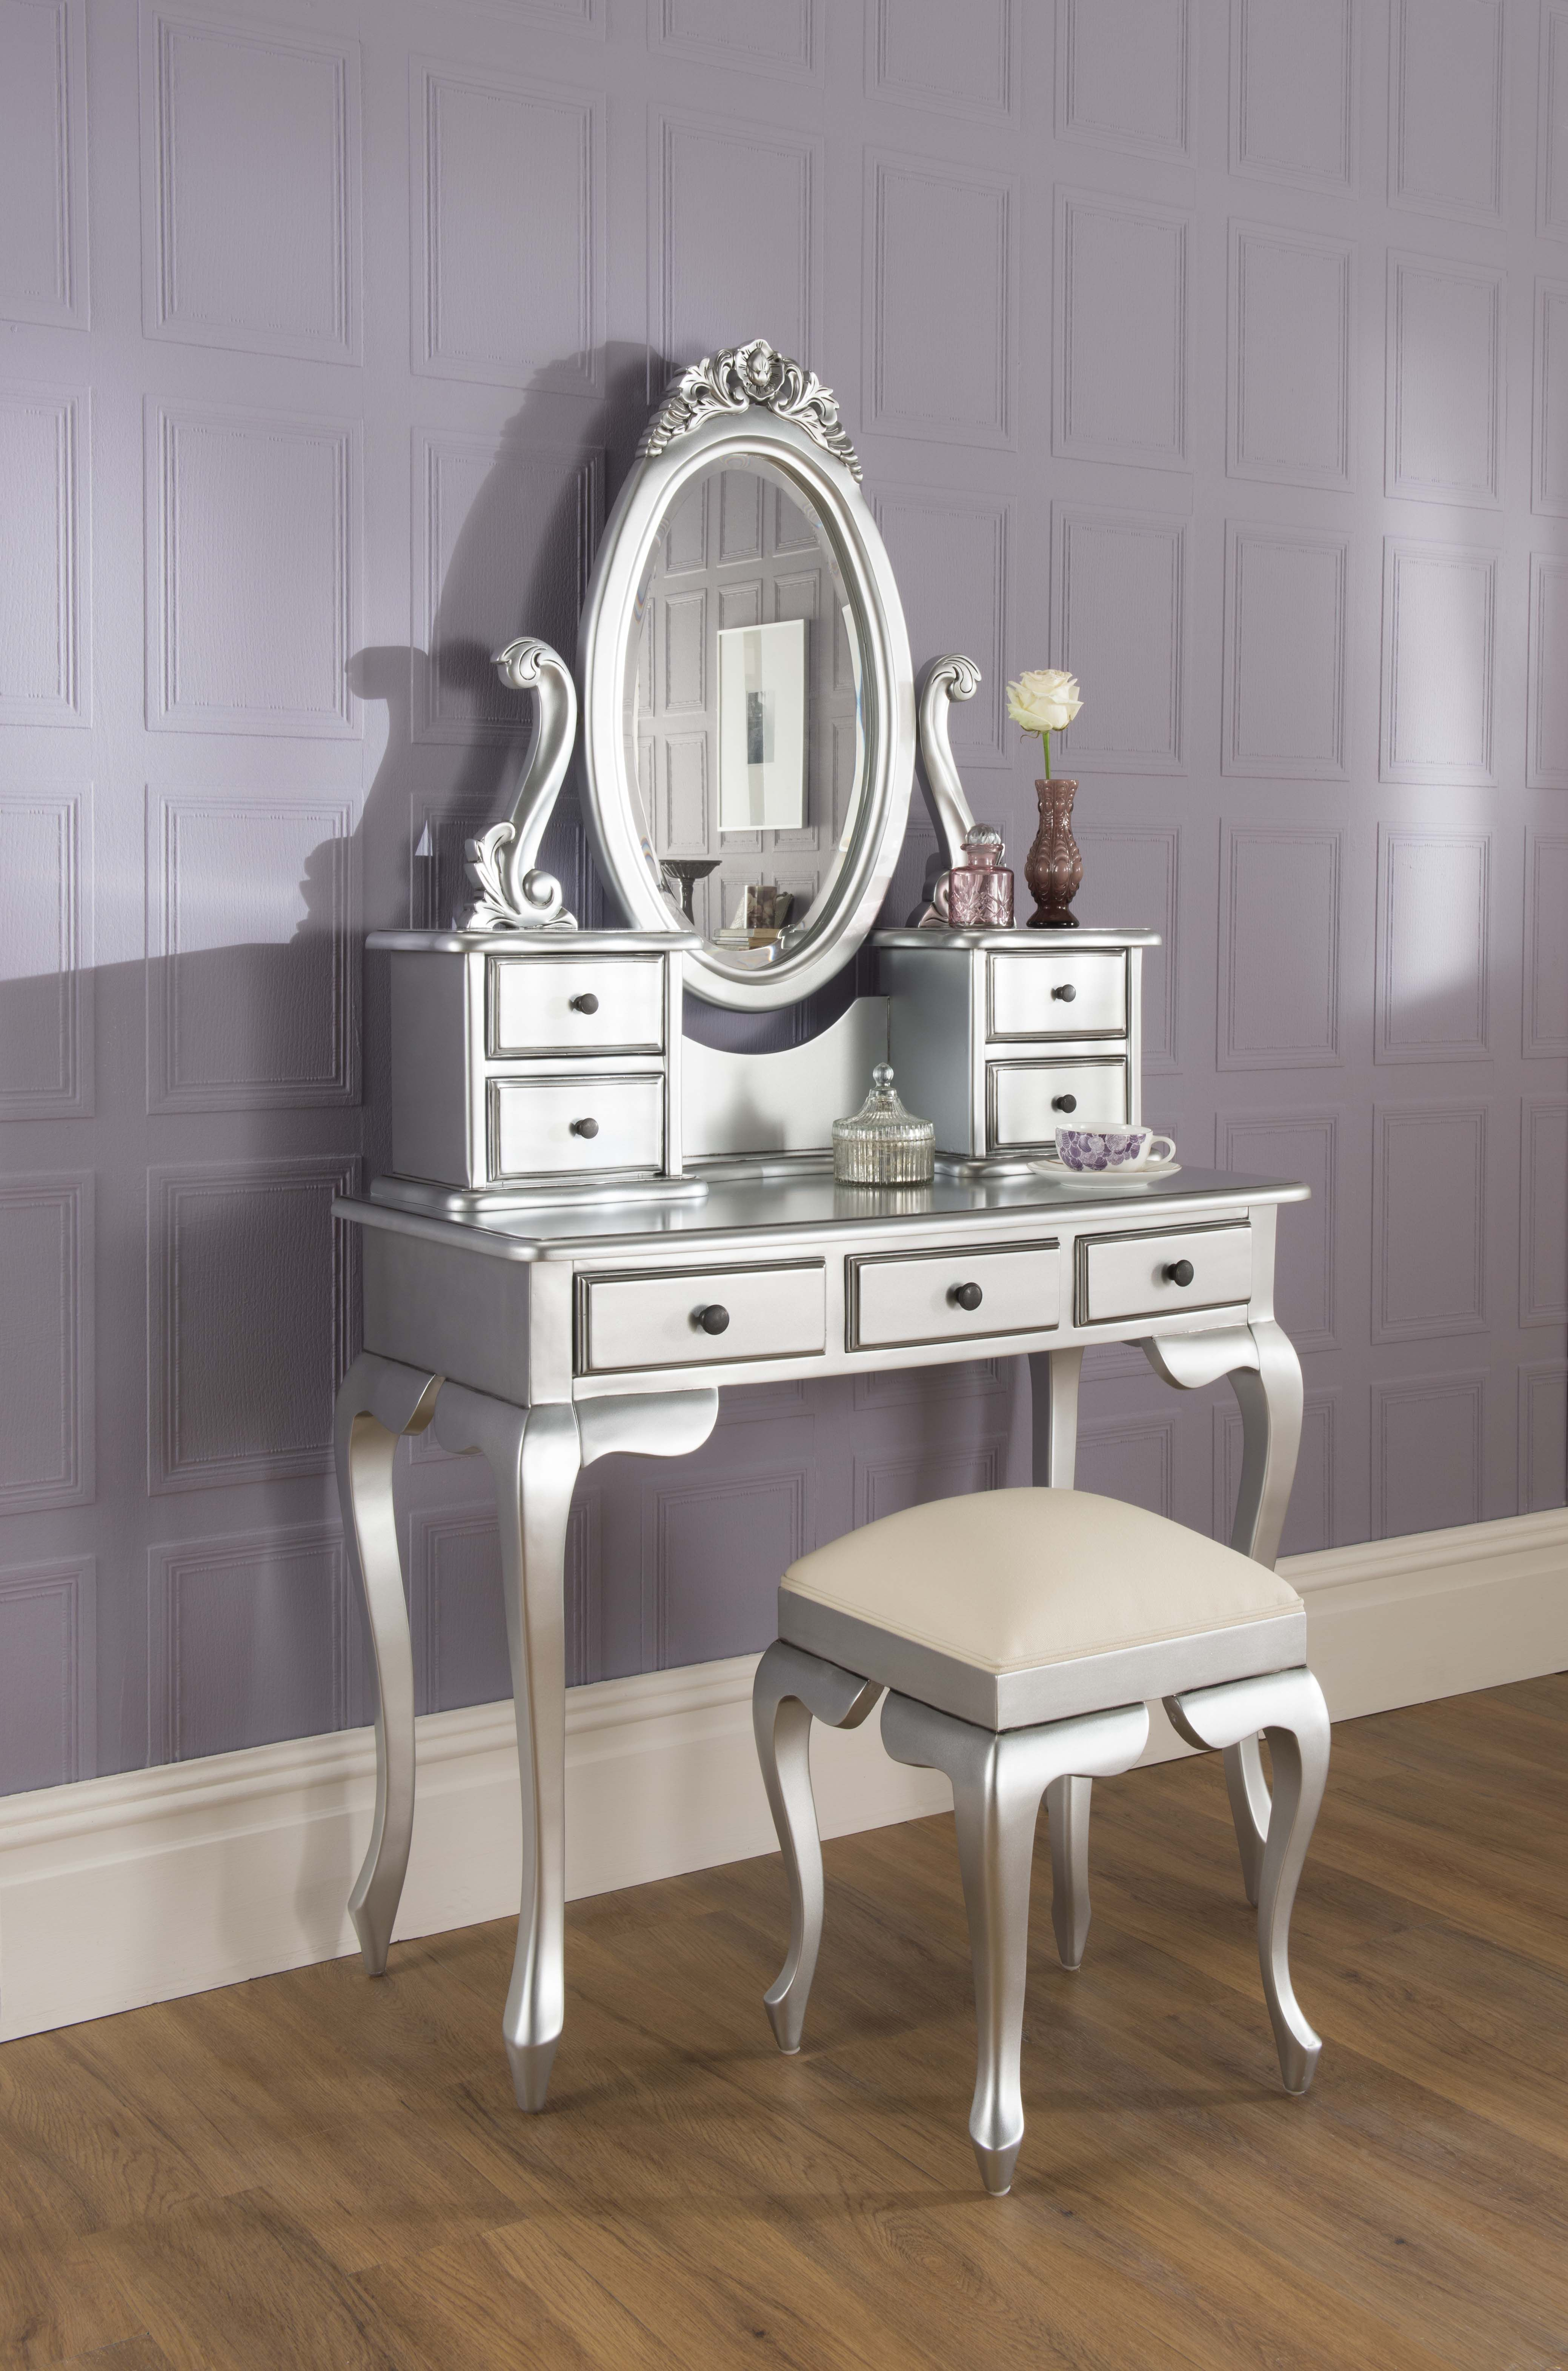 La Rochelle Bedroom Furniture La Rochelle Antique French Silver Dressing Table Set Now Alb47999